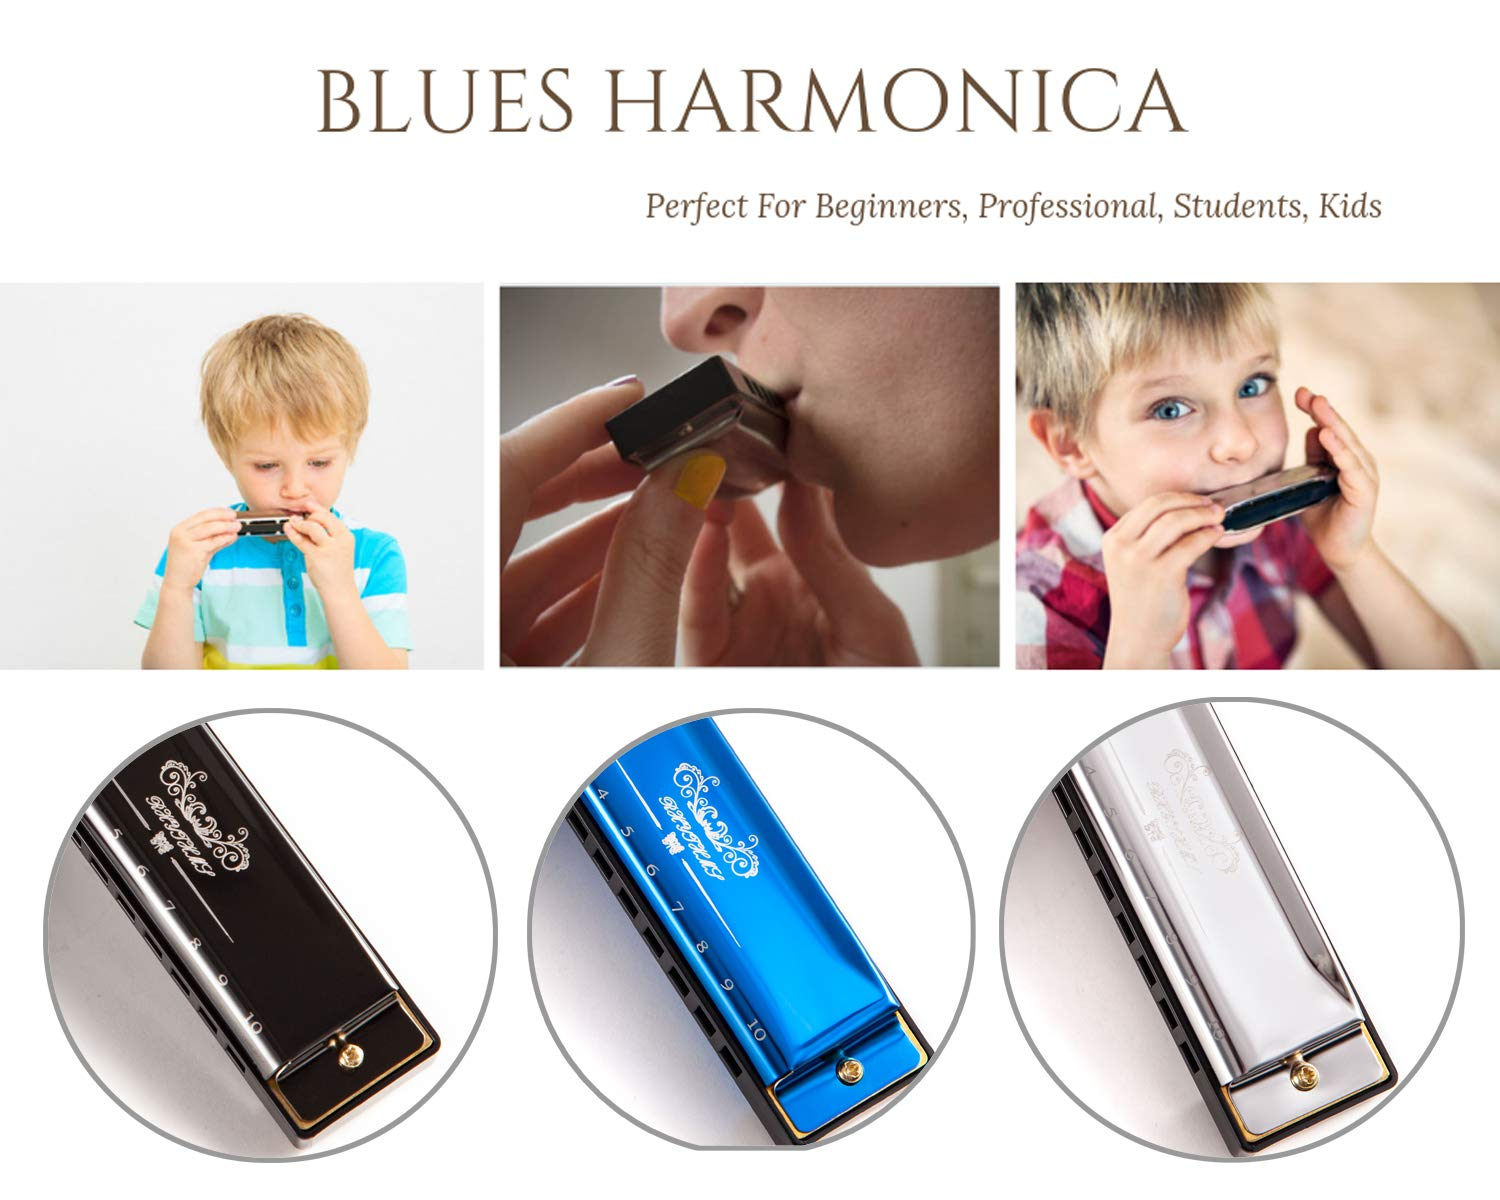 JSL Harmonica, Standard Diatonic Key of C 10 Holes 20 Tones Blues Mouth Organ Harp For Kids, Beginners, Professional, Students (Blues) by jieshiling (Image #5)